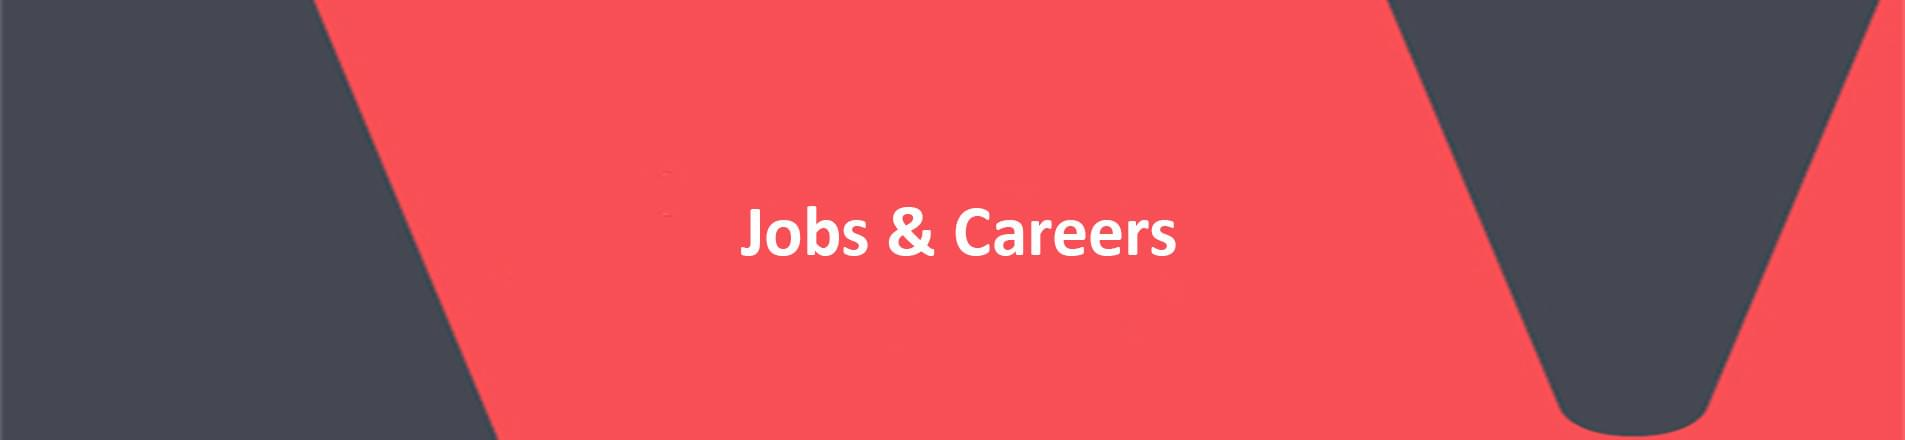 The words Jobs & Careers in white on a red VERCIDA branded background